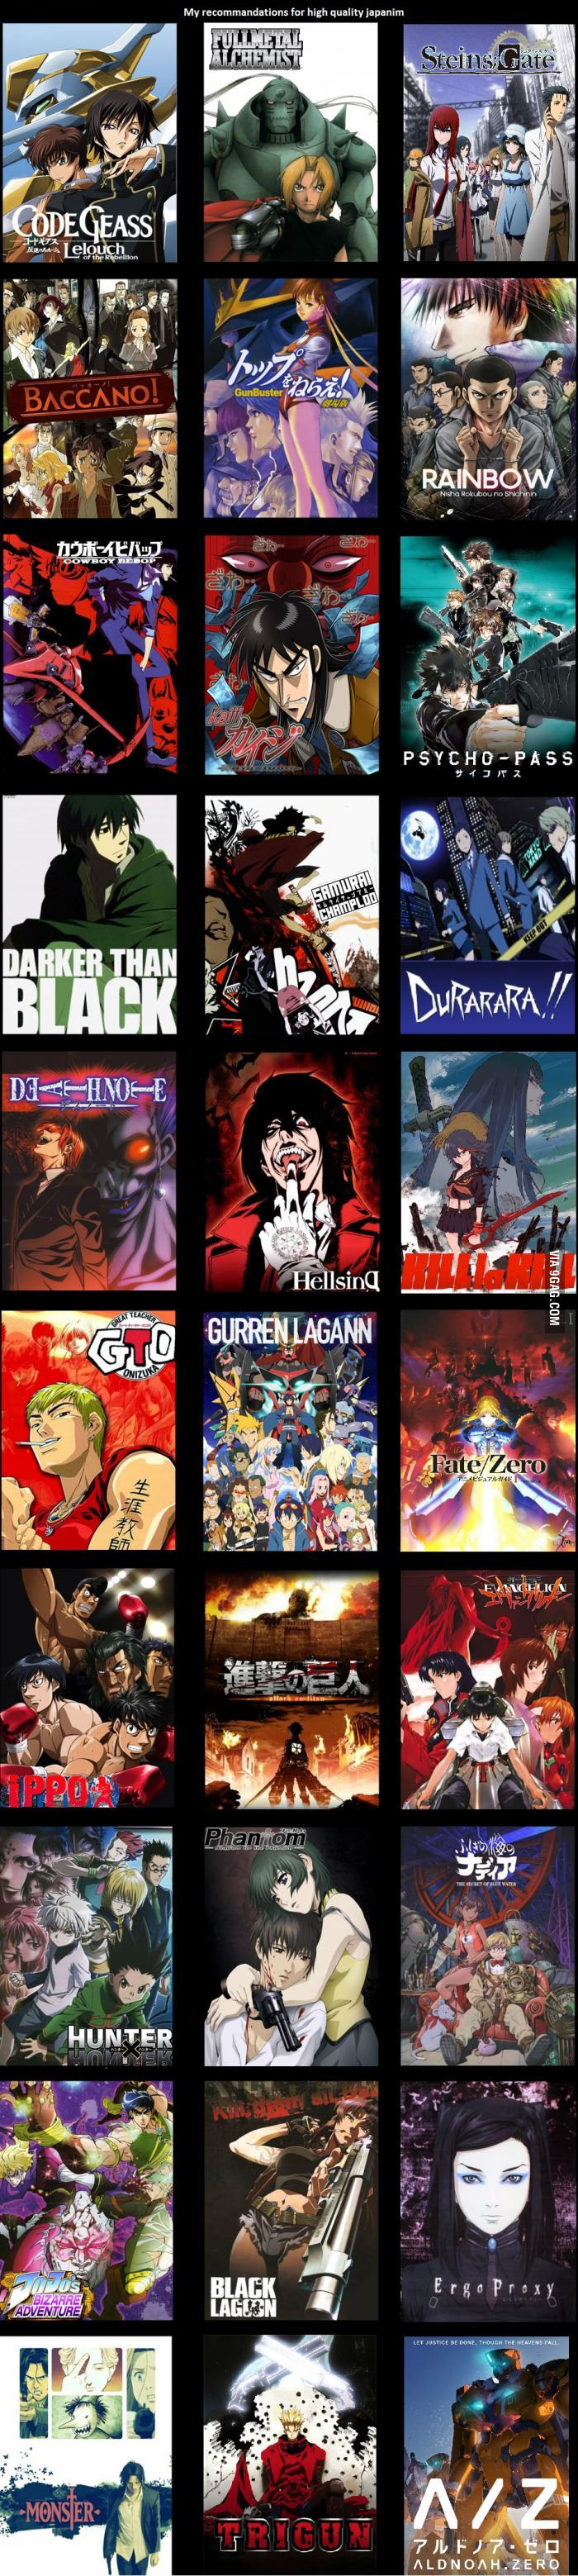 i heard 9gag wants more anime here is a subjective list of